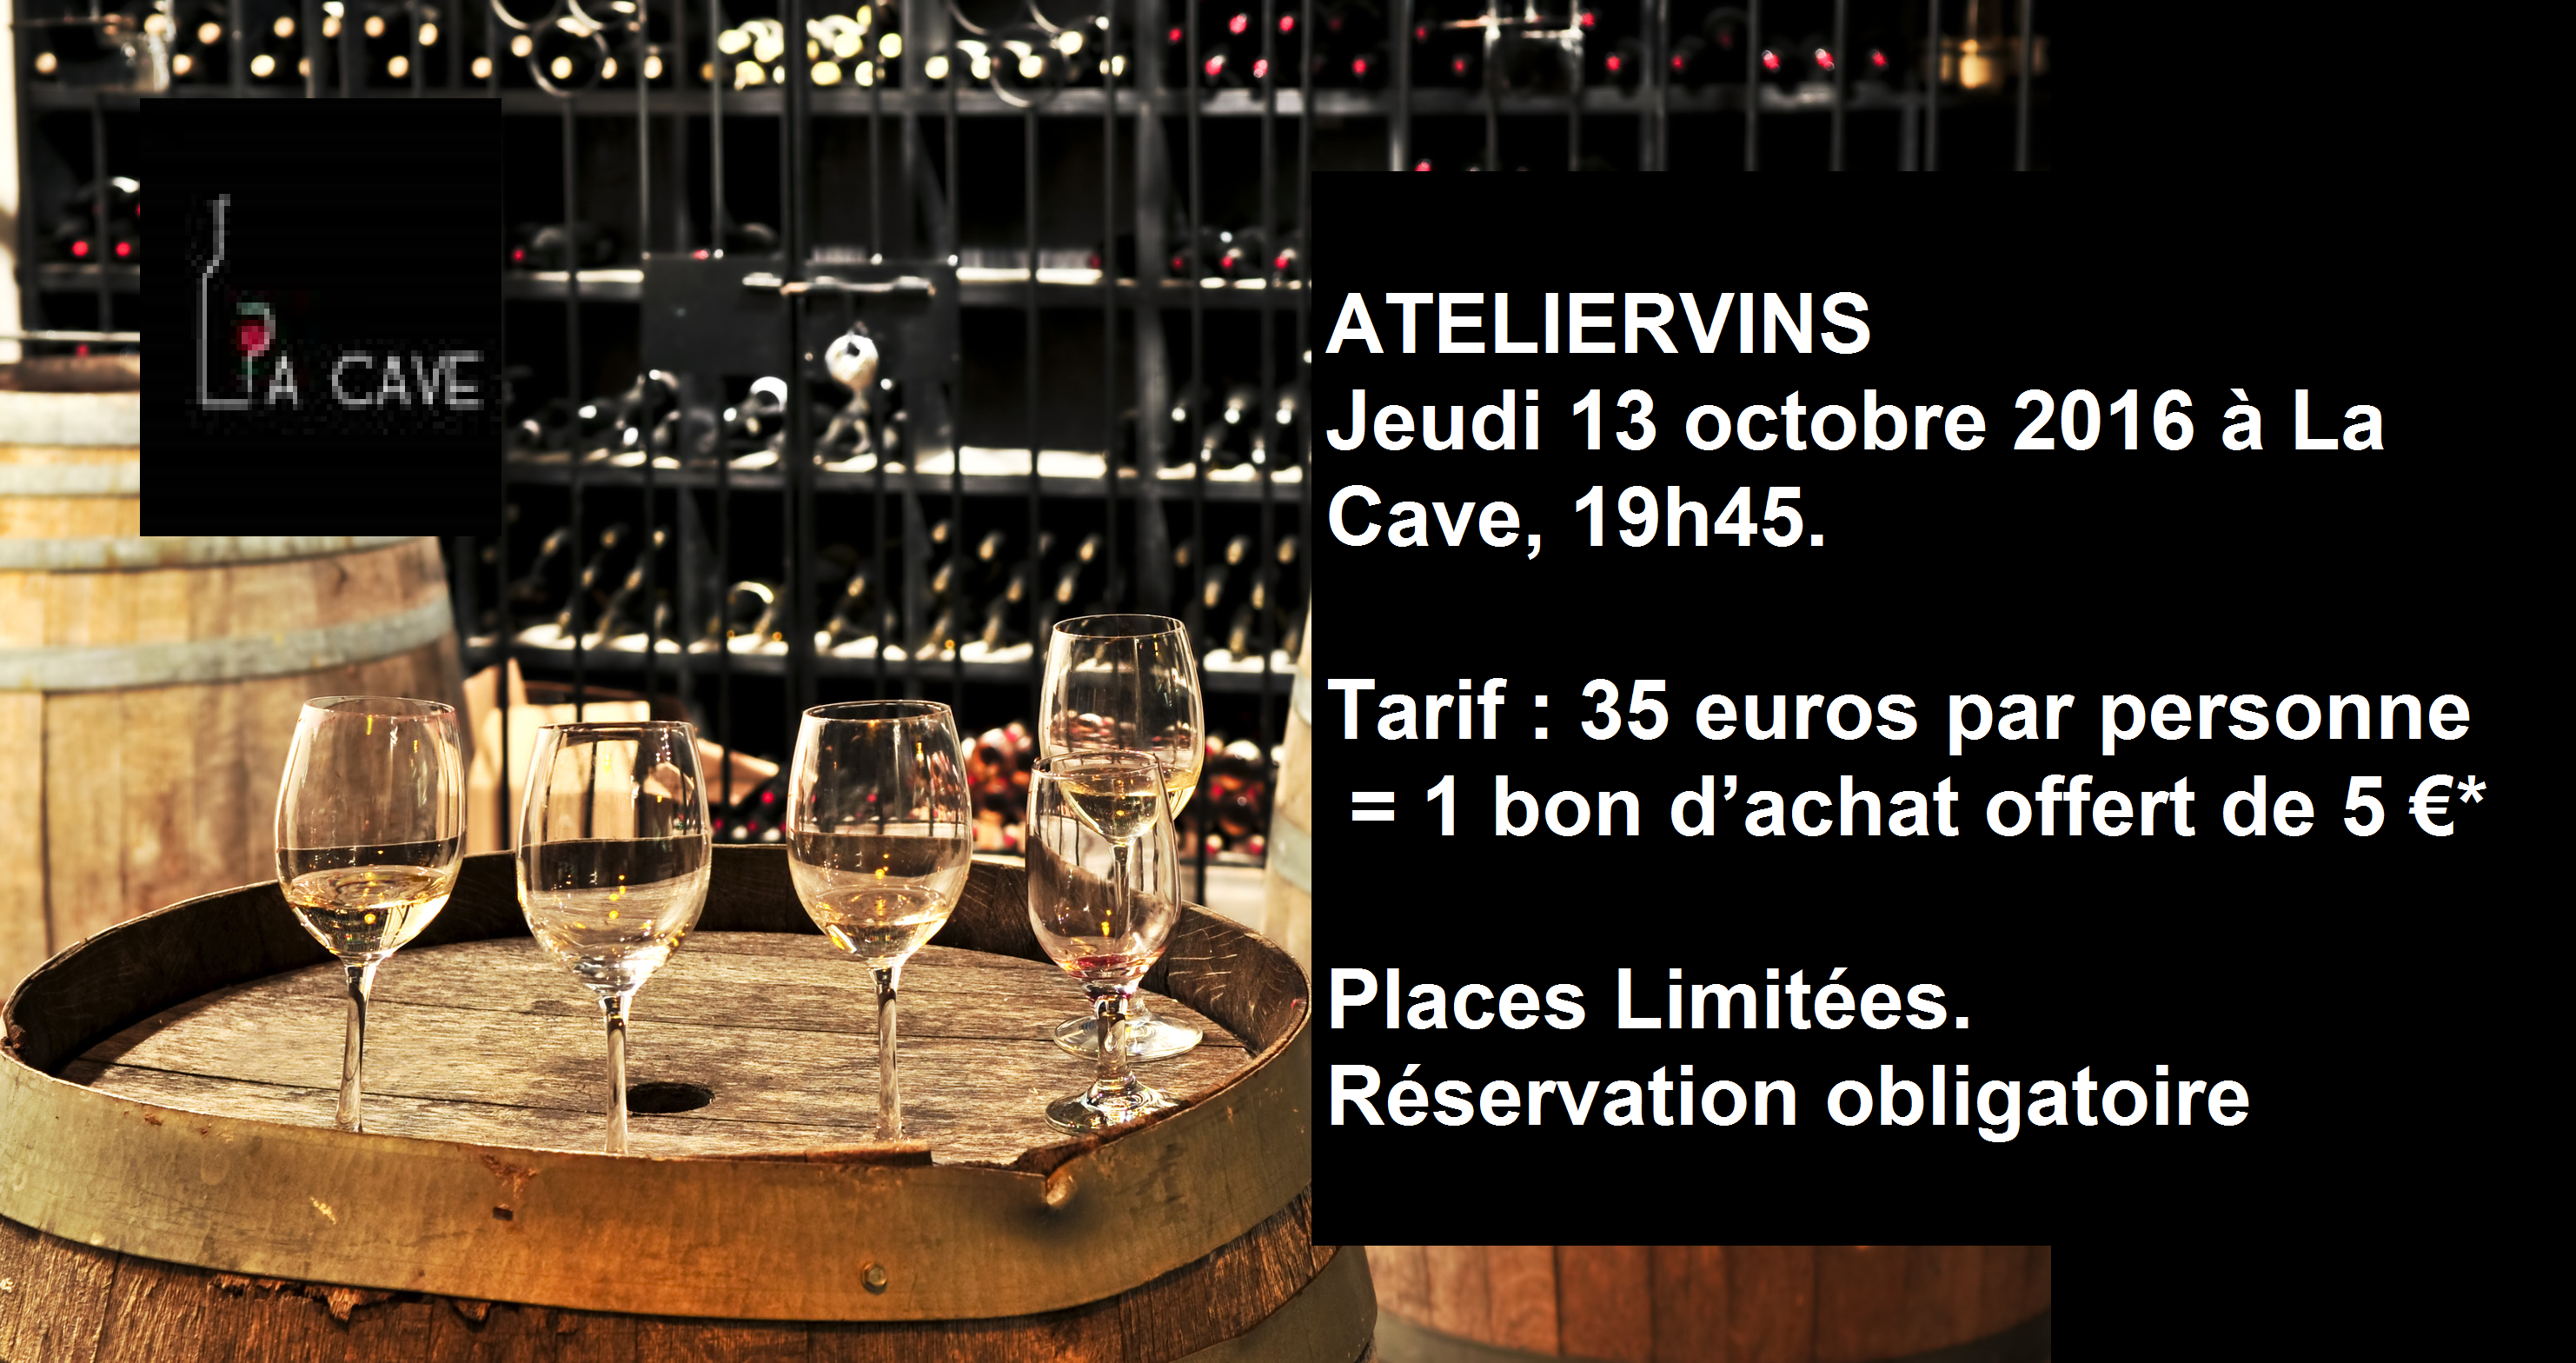 ateliervins-13-octobre